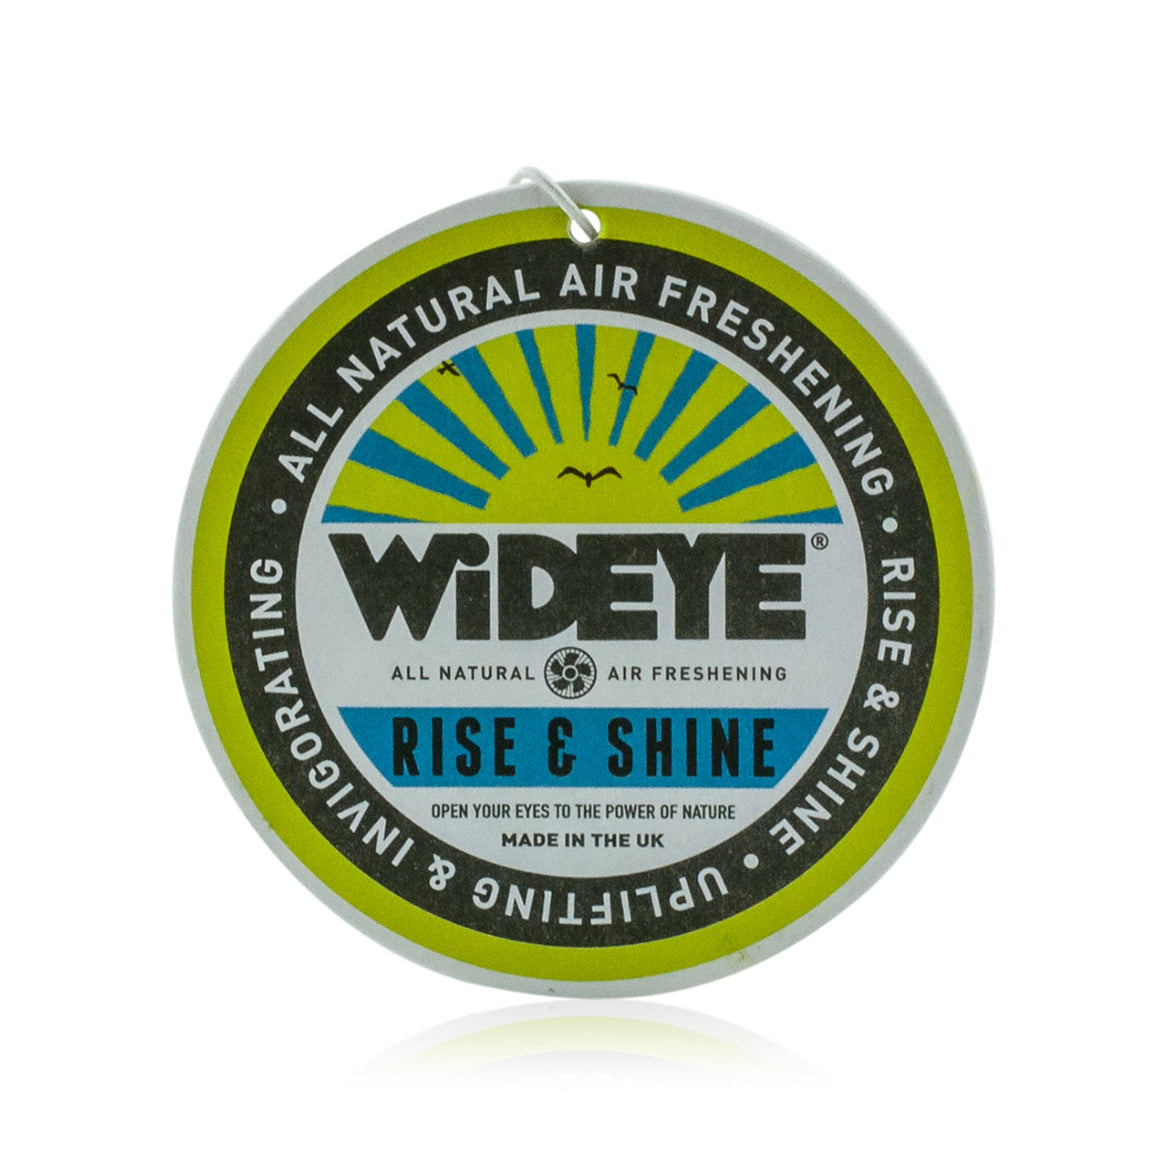 Natural aromatherapy 'Rise & Shine' re-chargeable air freshener for your car or home handmade by WiDEYE in Rye.